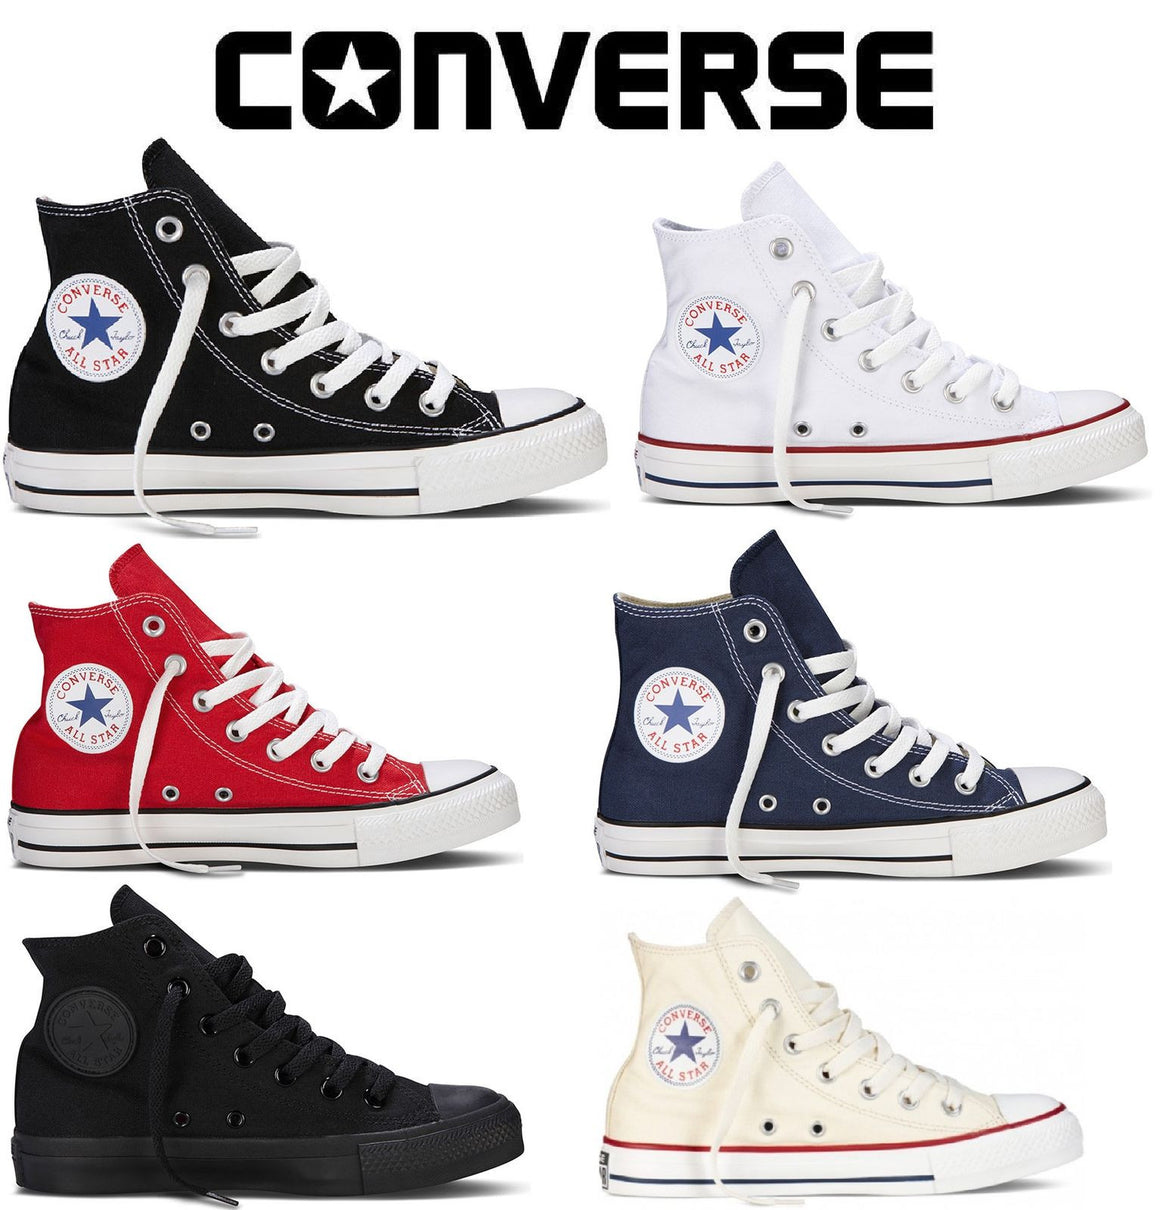 9bf45c8d4018 Converse Classic Chuck Taylor Low Trainer All Star OX NEW On Sale Free  Delivery UK - Hot Pickz